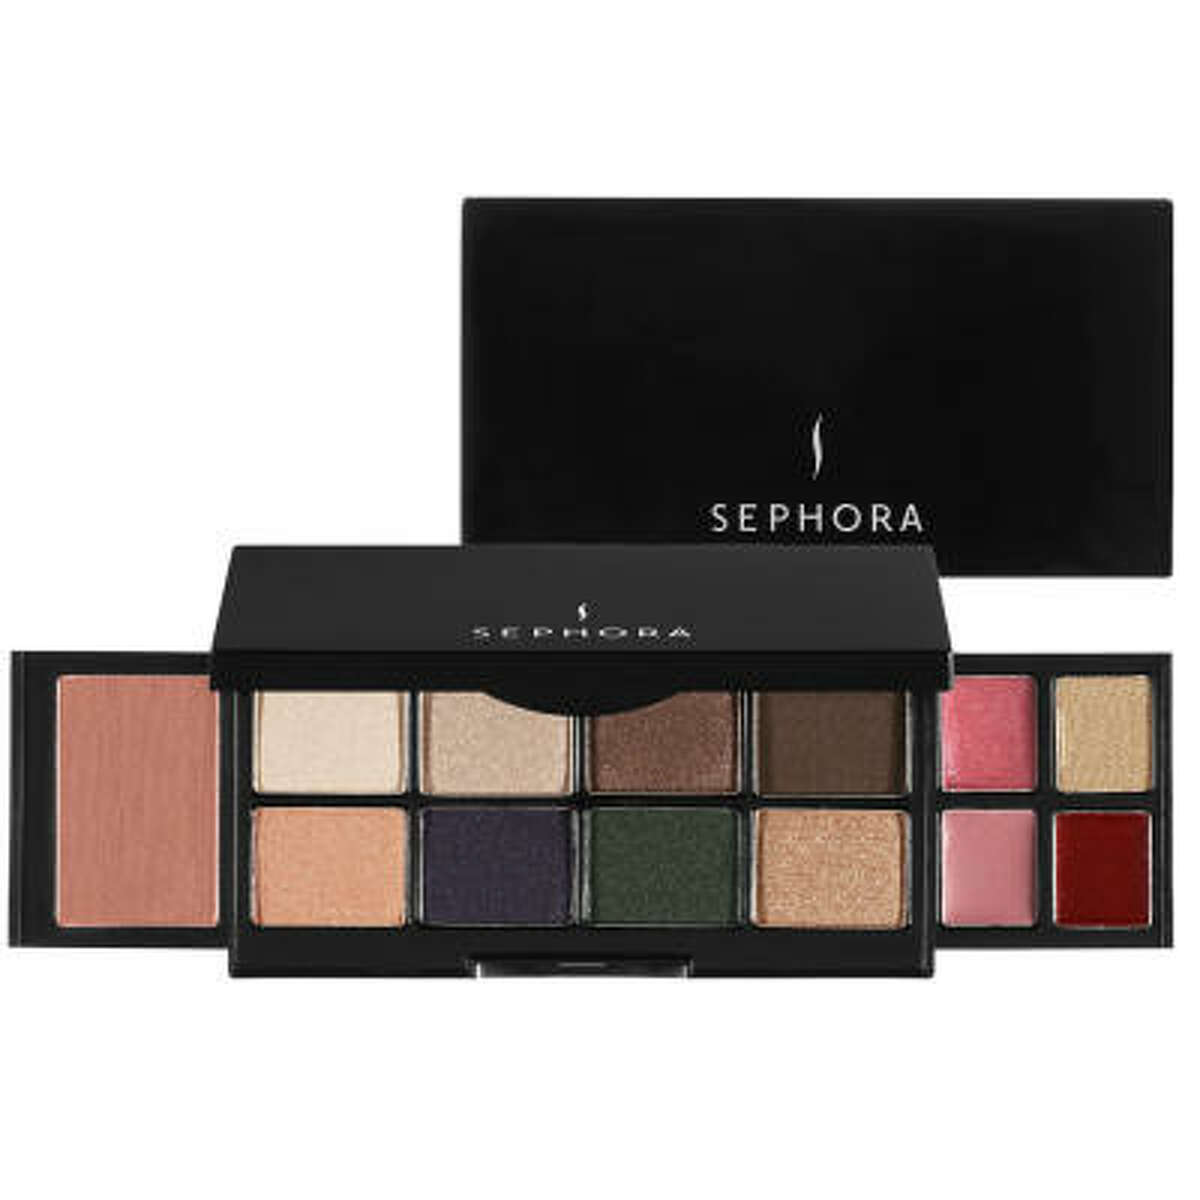 Sephora Collection Makeup Palette To Go, $15, at Sephora.